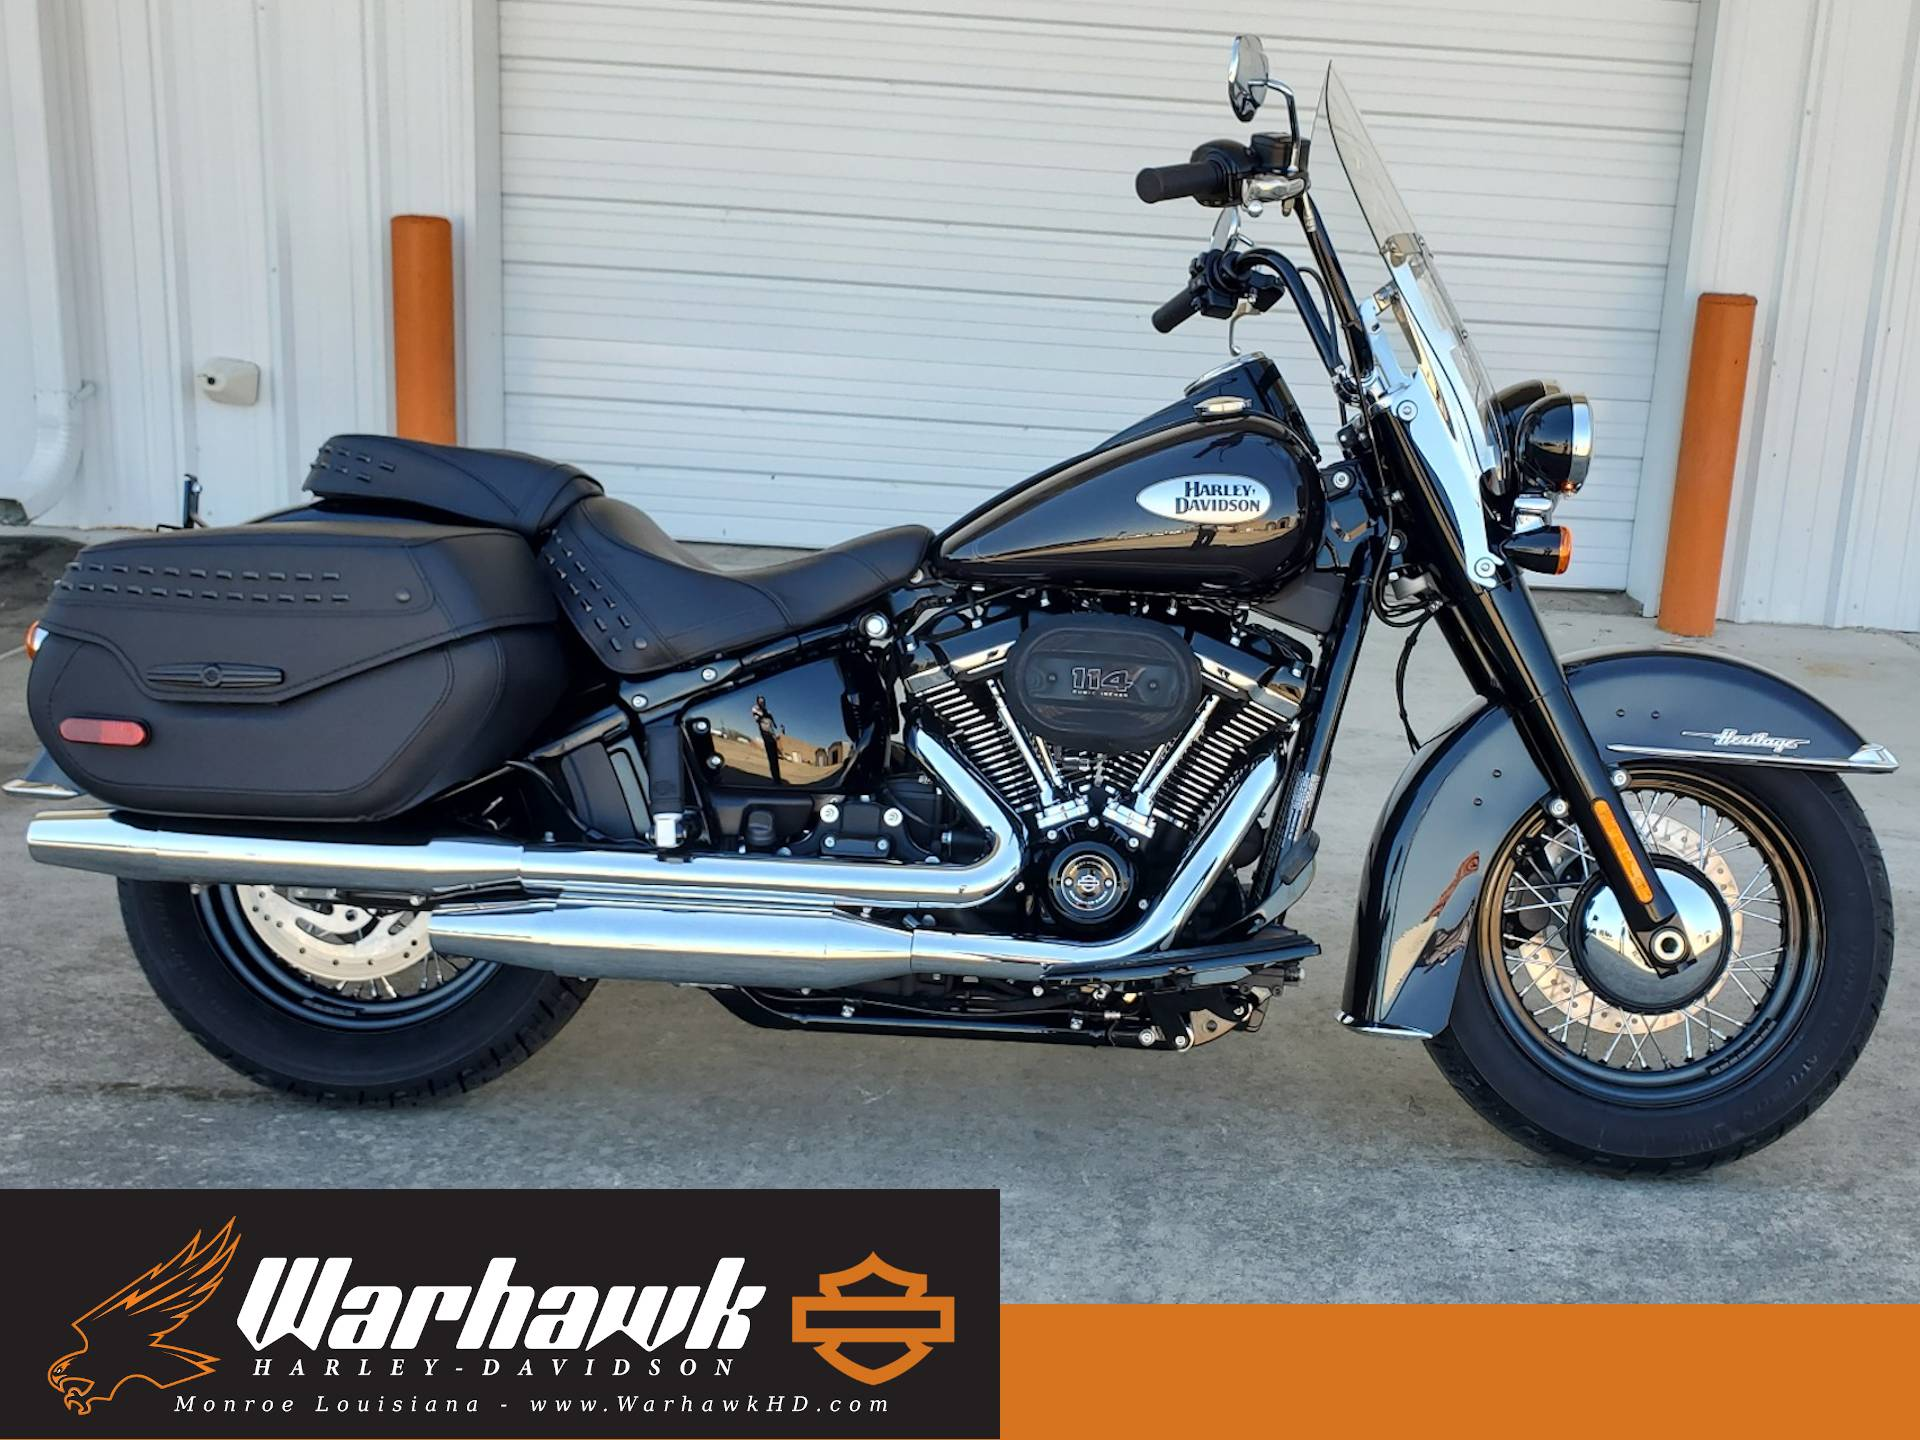 2021 Harley Heritage for sale near me - Photo 1